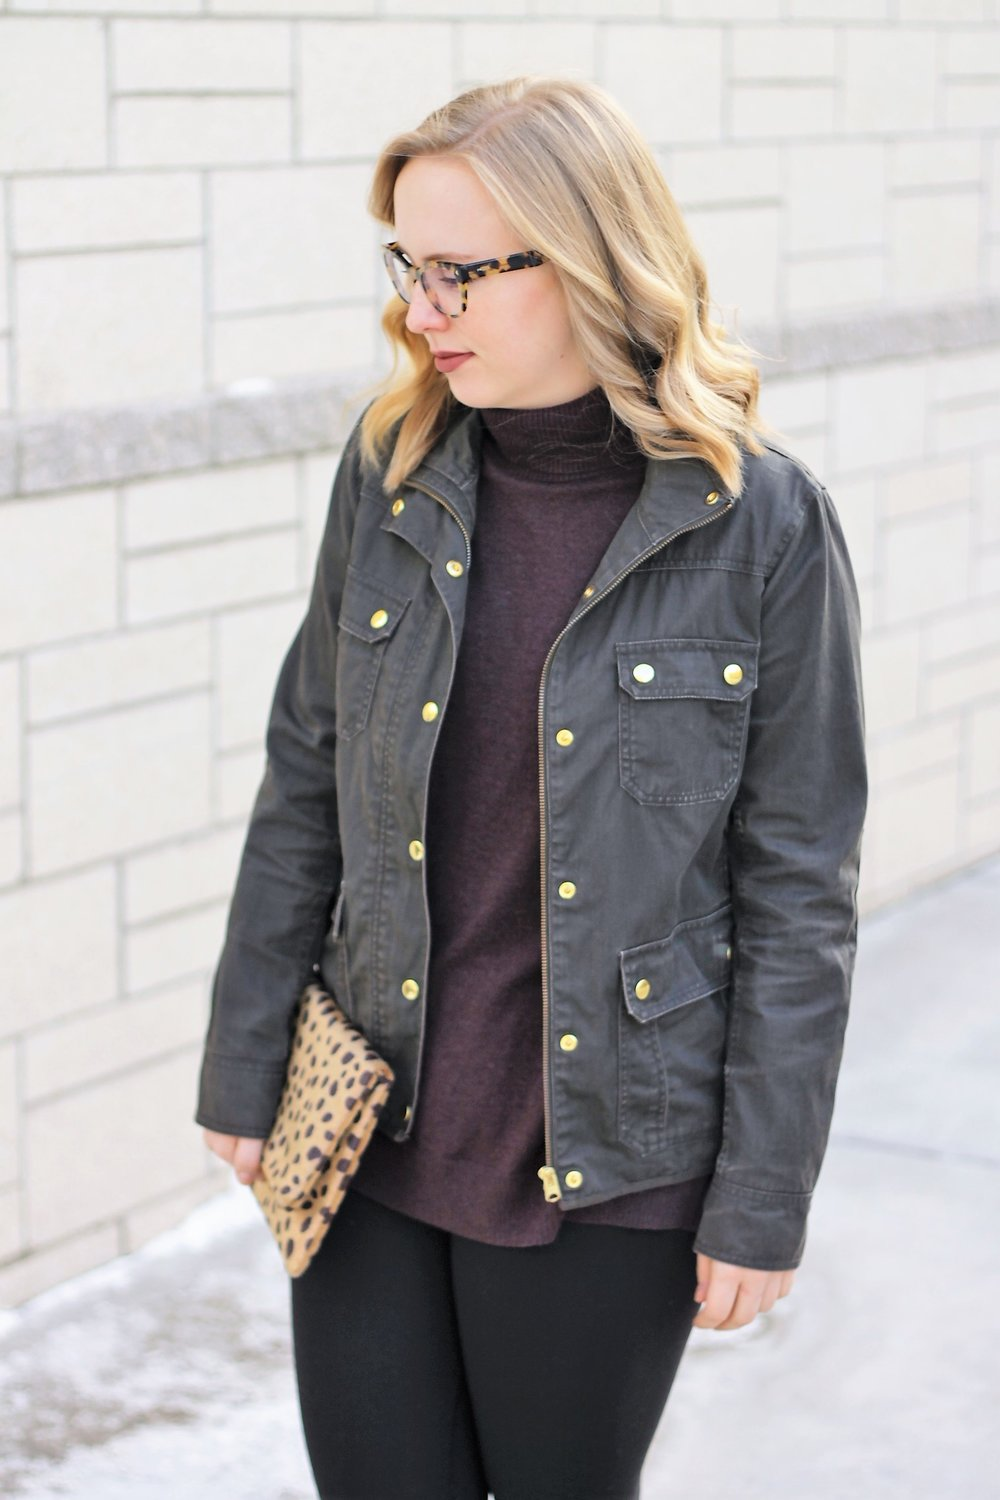 Rain Boots & Field Jacket | Work & What She Wore